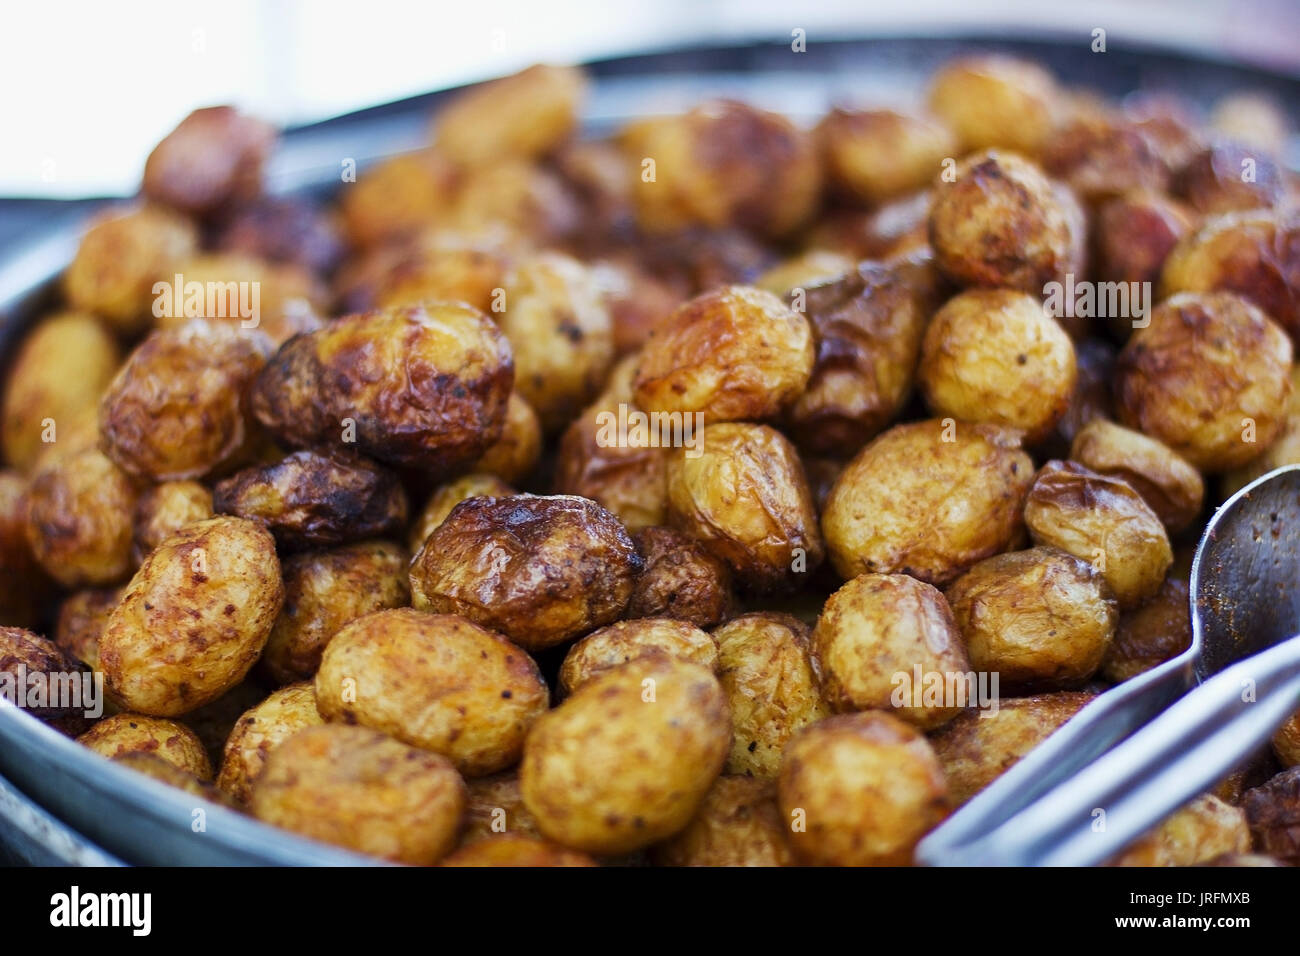 Baked yellow brown young patatoes - Stock Image